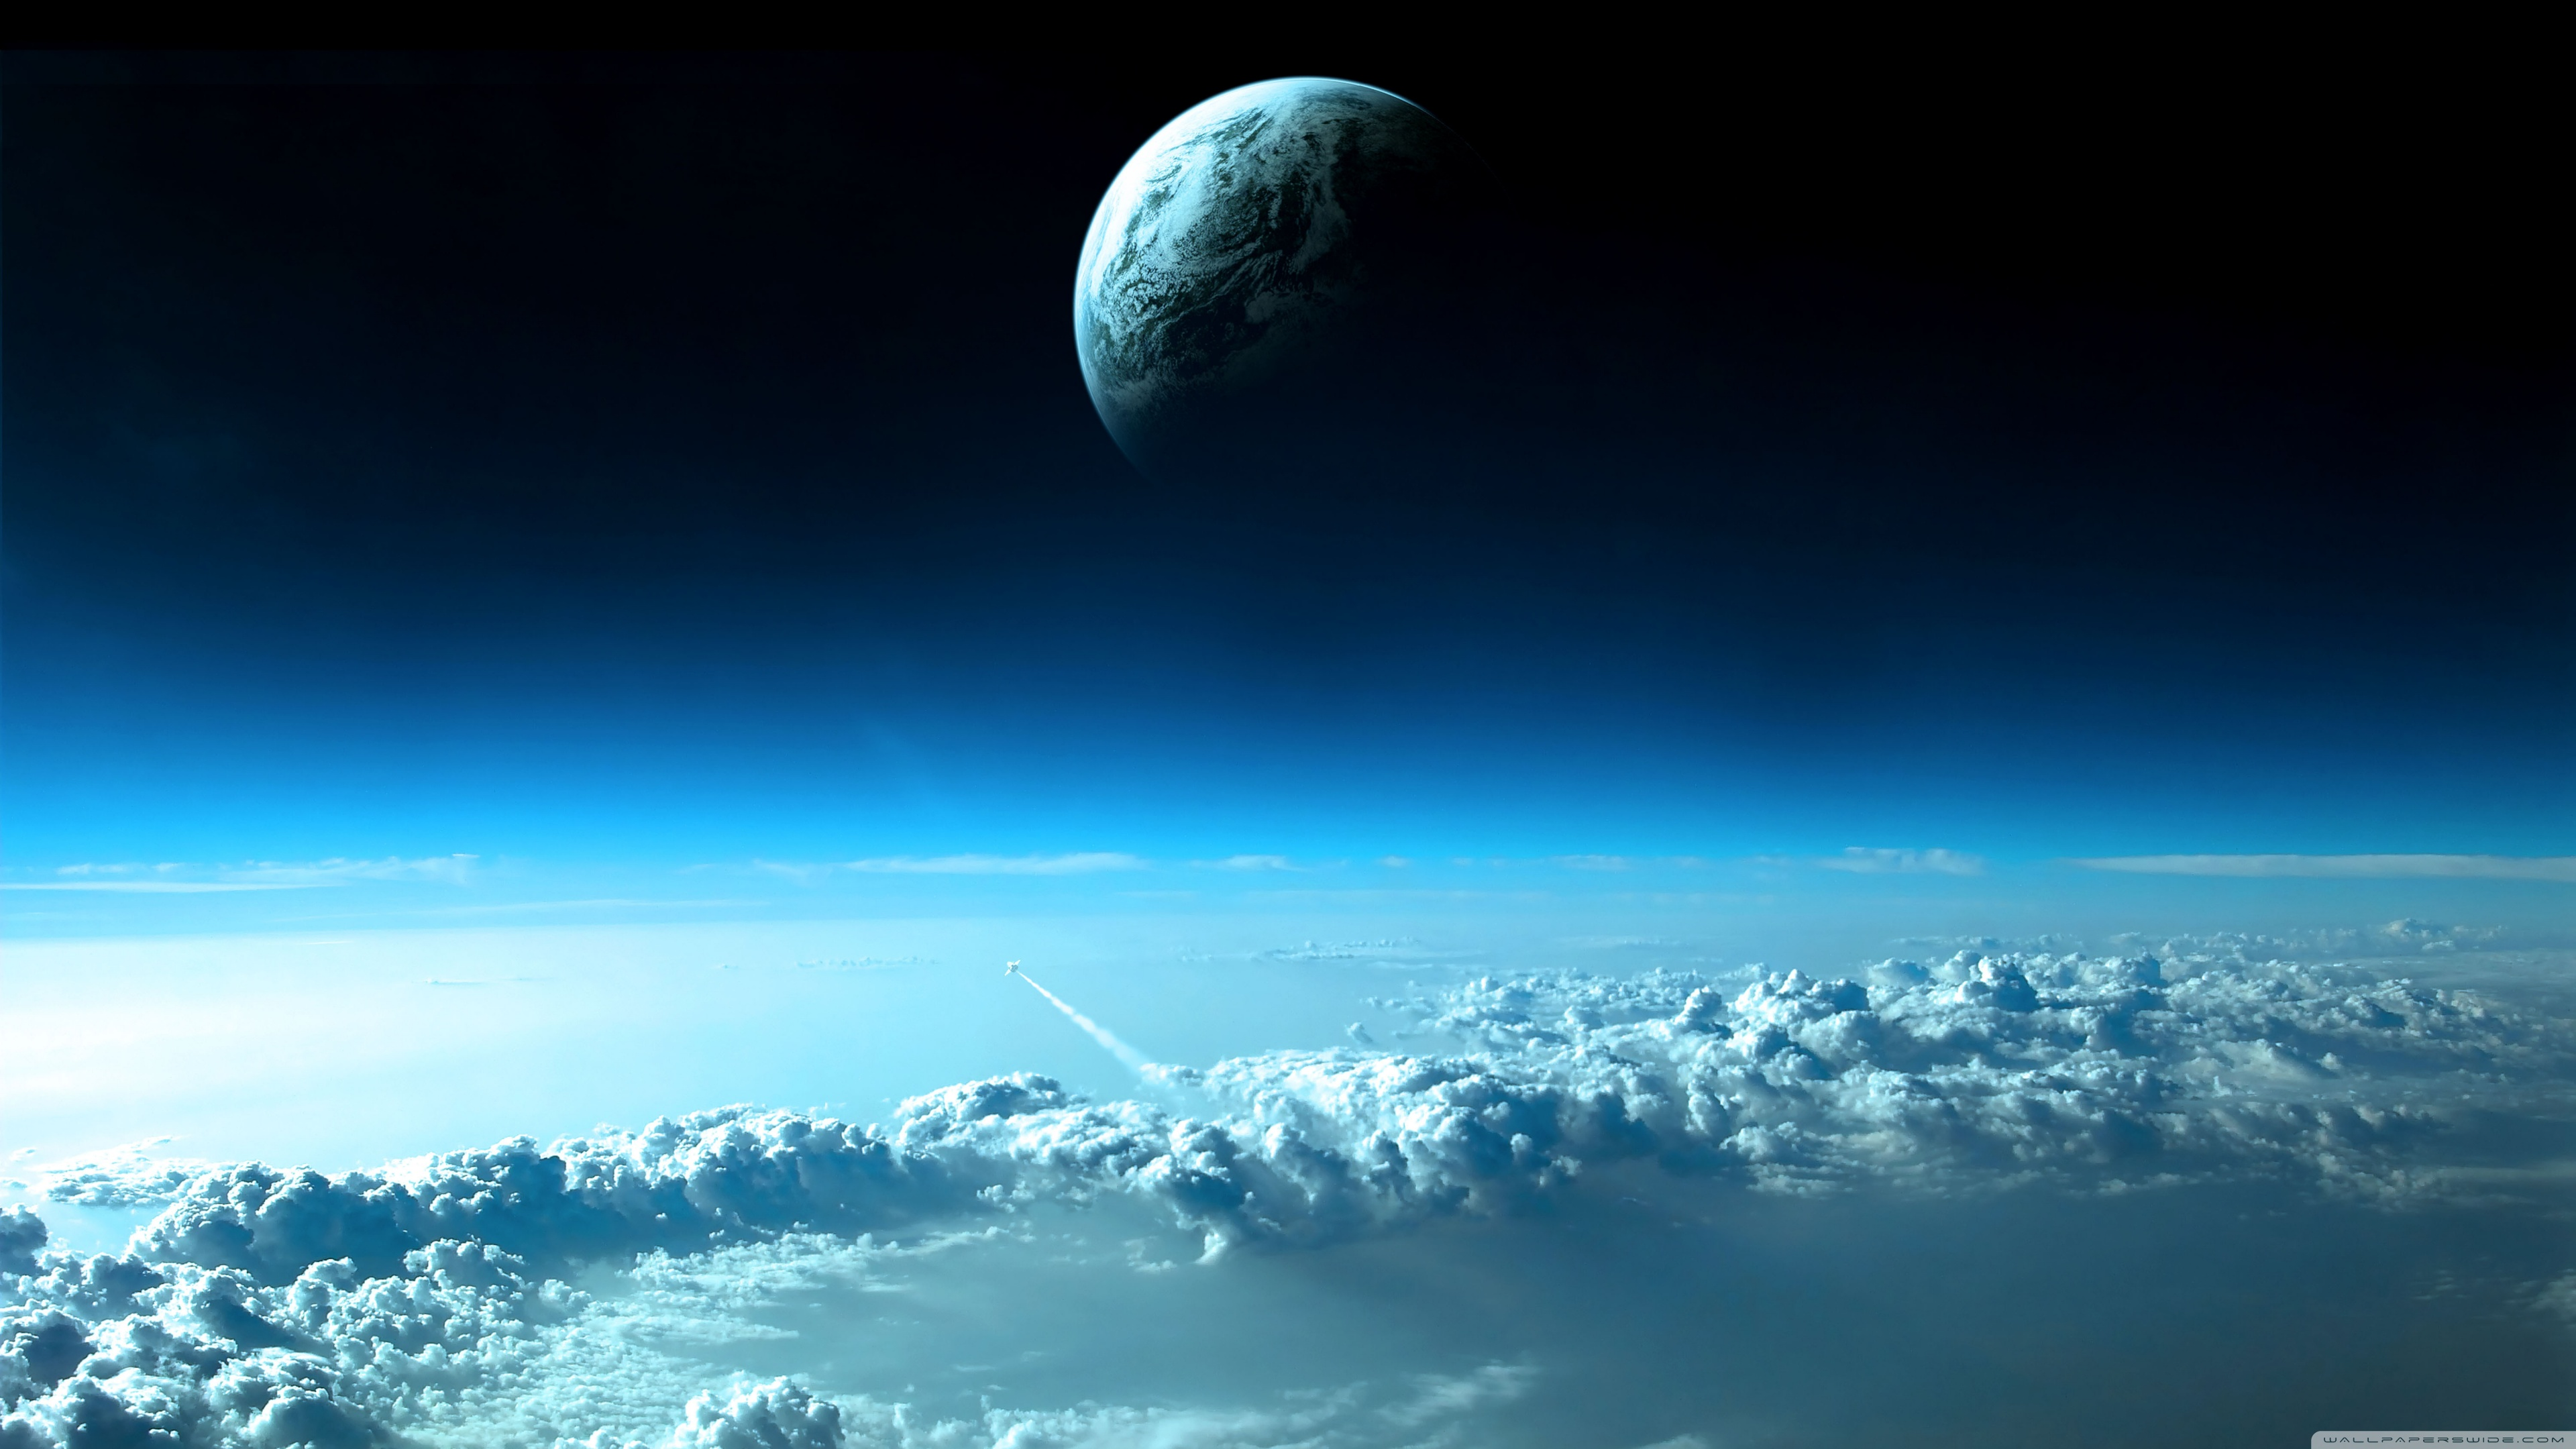 10 New Real Space Wallpapers 1920x1080 Full Hd 1080p For: Download Space High Definition Wallpapers Gallery